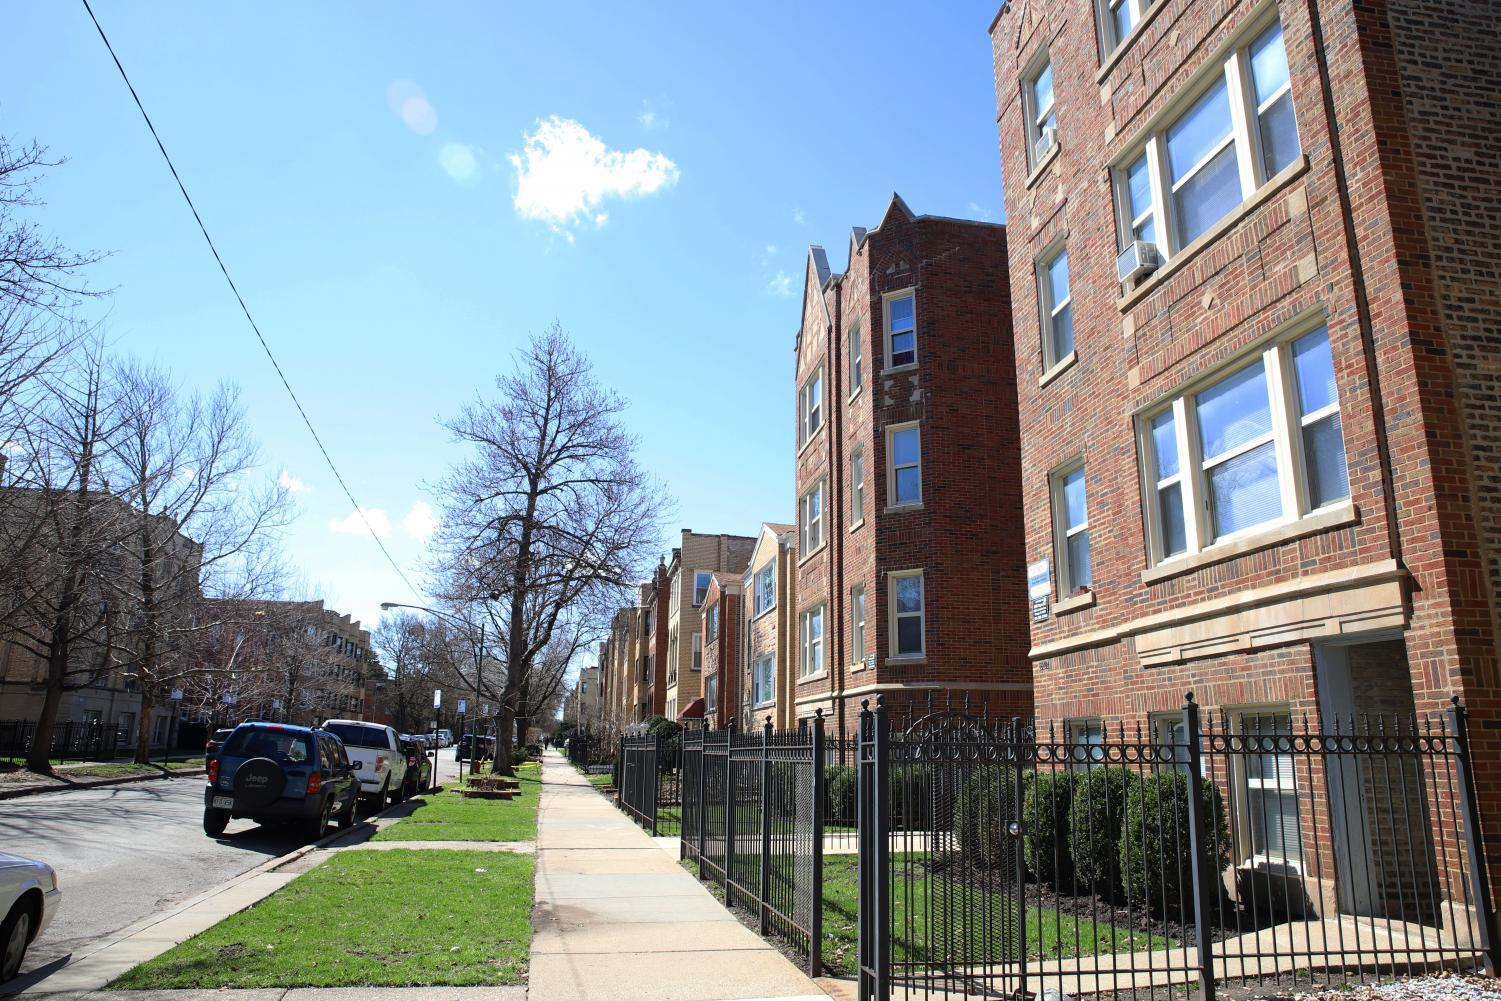 Many DePaul students live in apartments off campus in Chicago's North Side neighborhoods, getting their first taste of life as an independent. For some, that experience can be a nightmare.